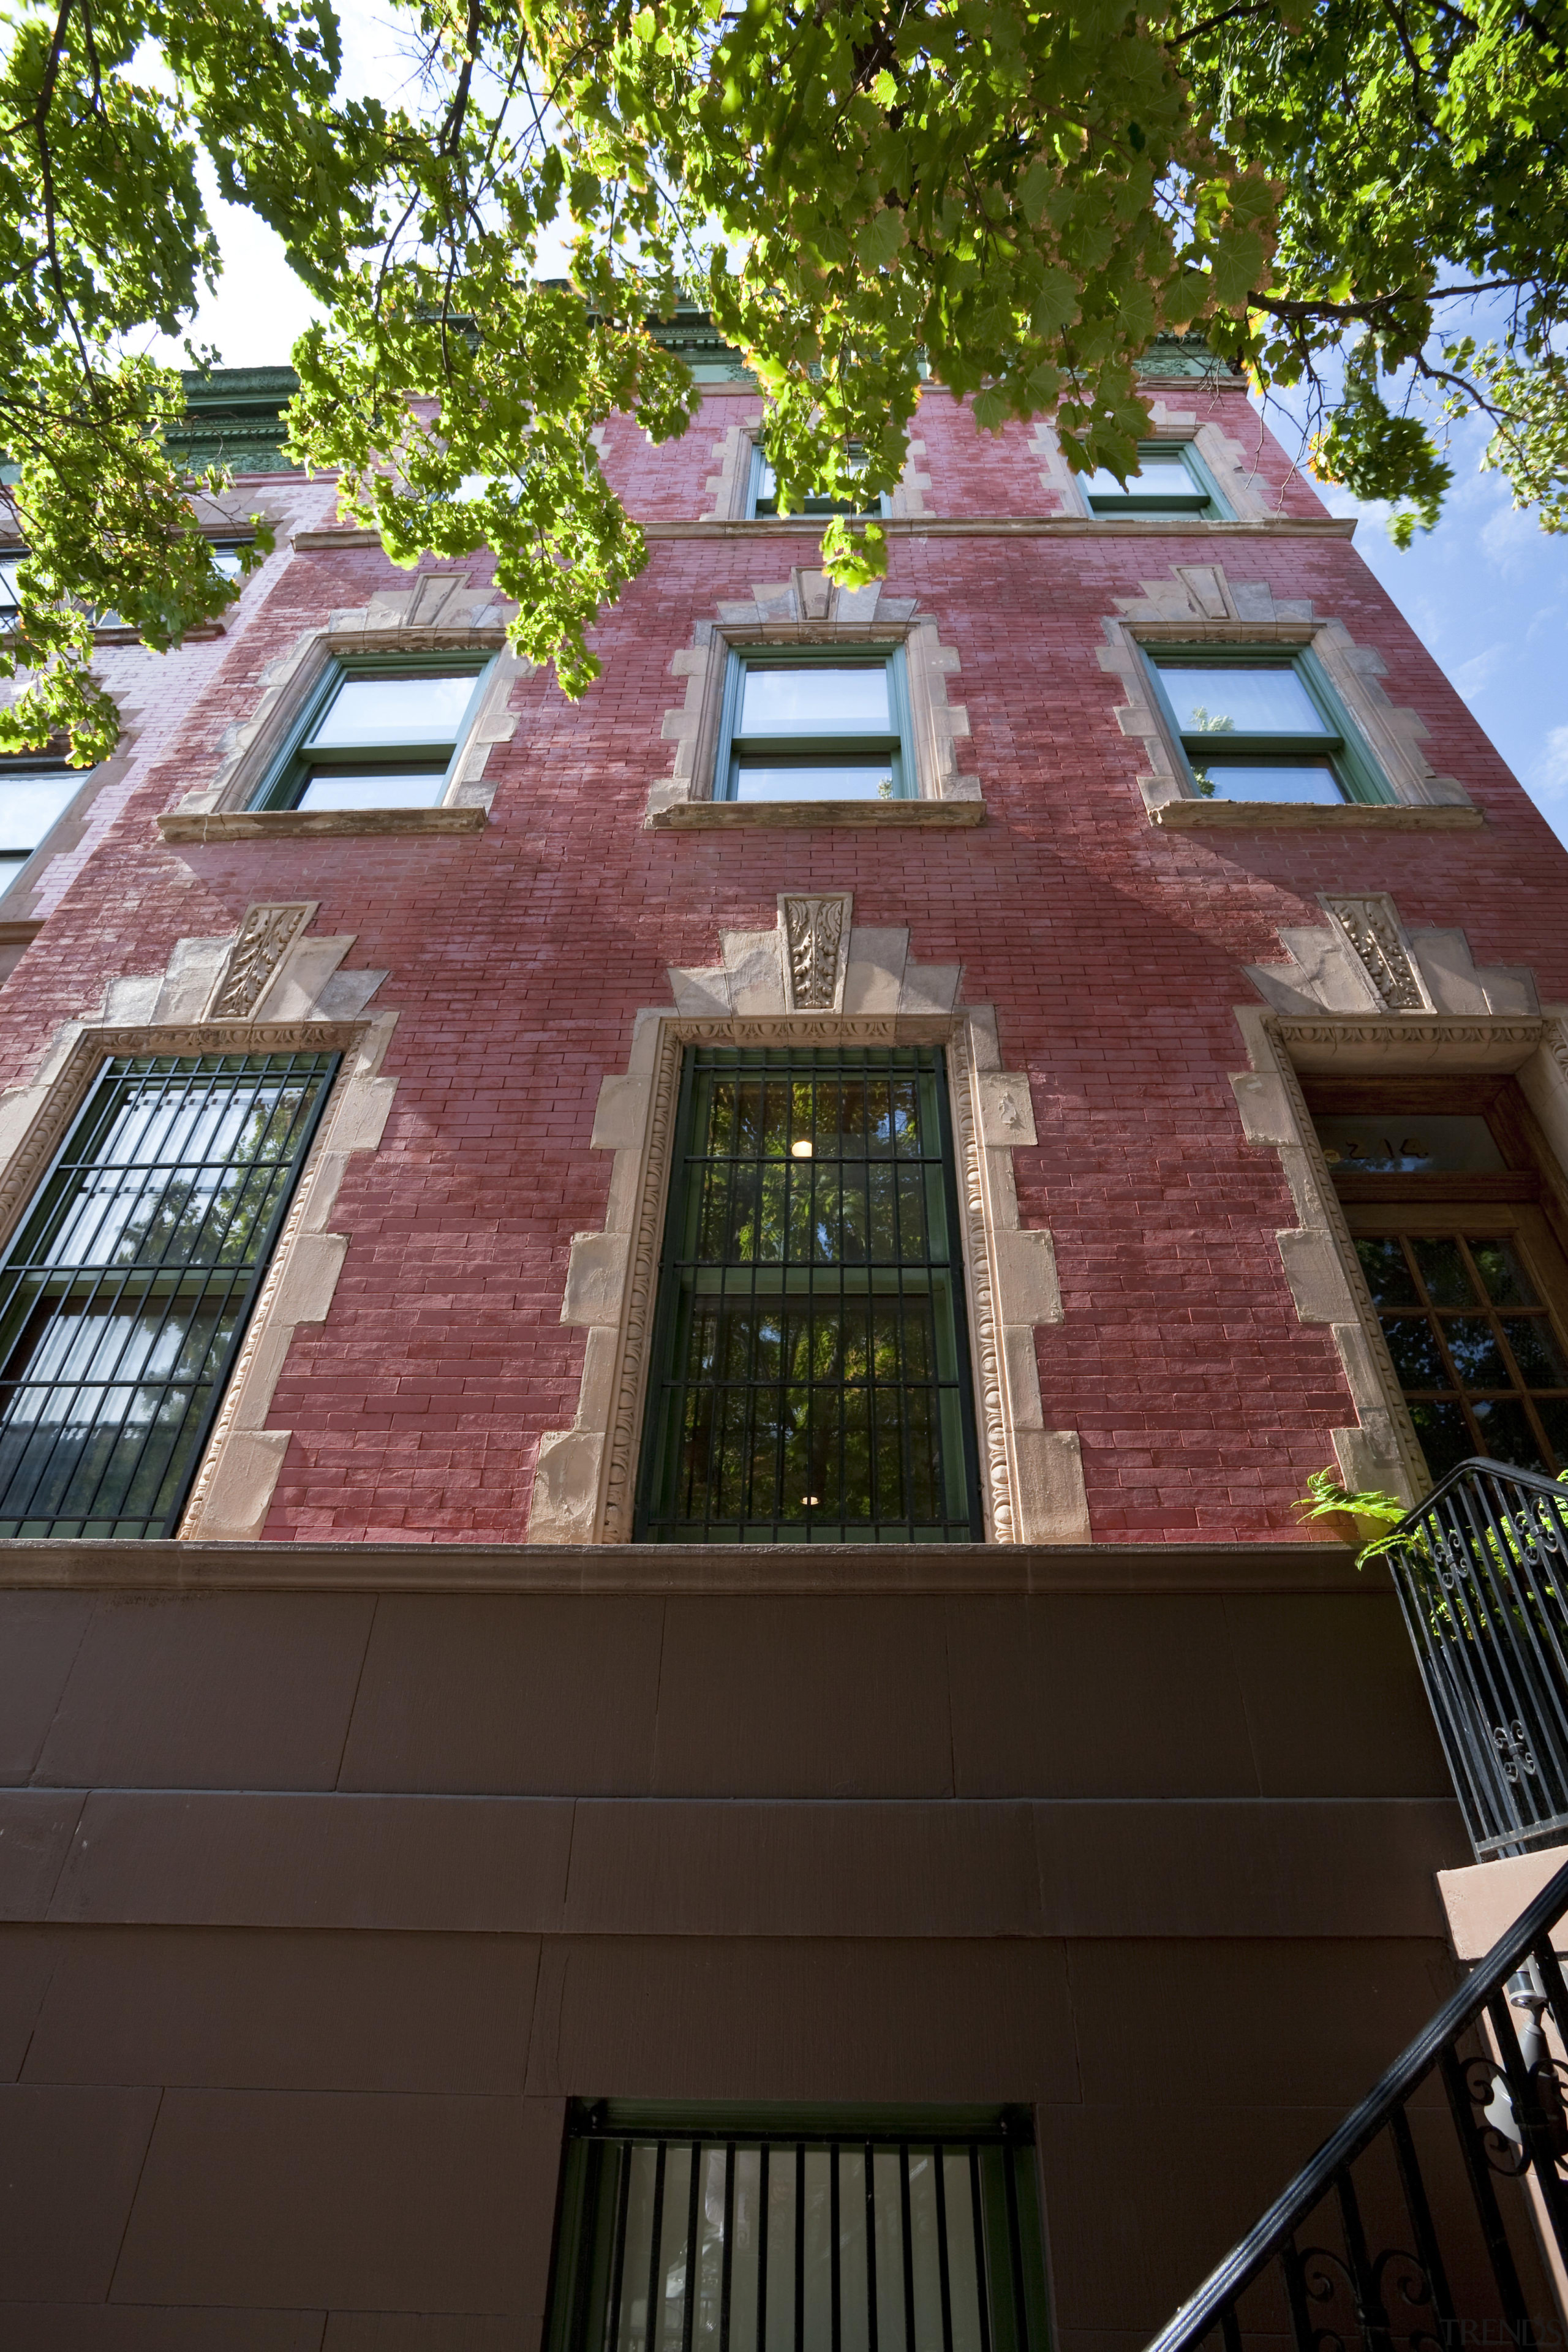 This house was remodeled by Architect Brian J. apartment, architecture, brick, building, facade, home, house, landmark, neighbourhood, property, real estate, residential area, roof, window, brown